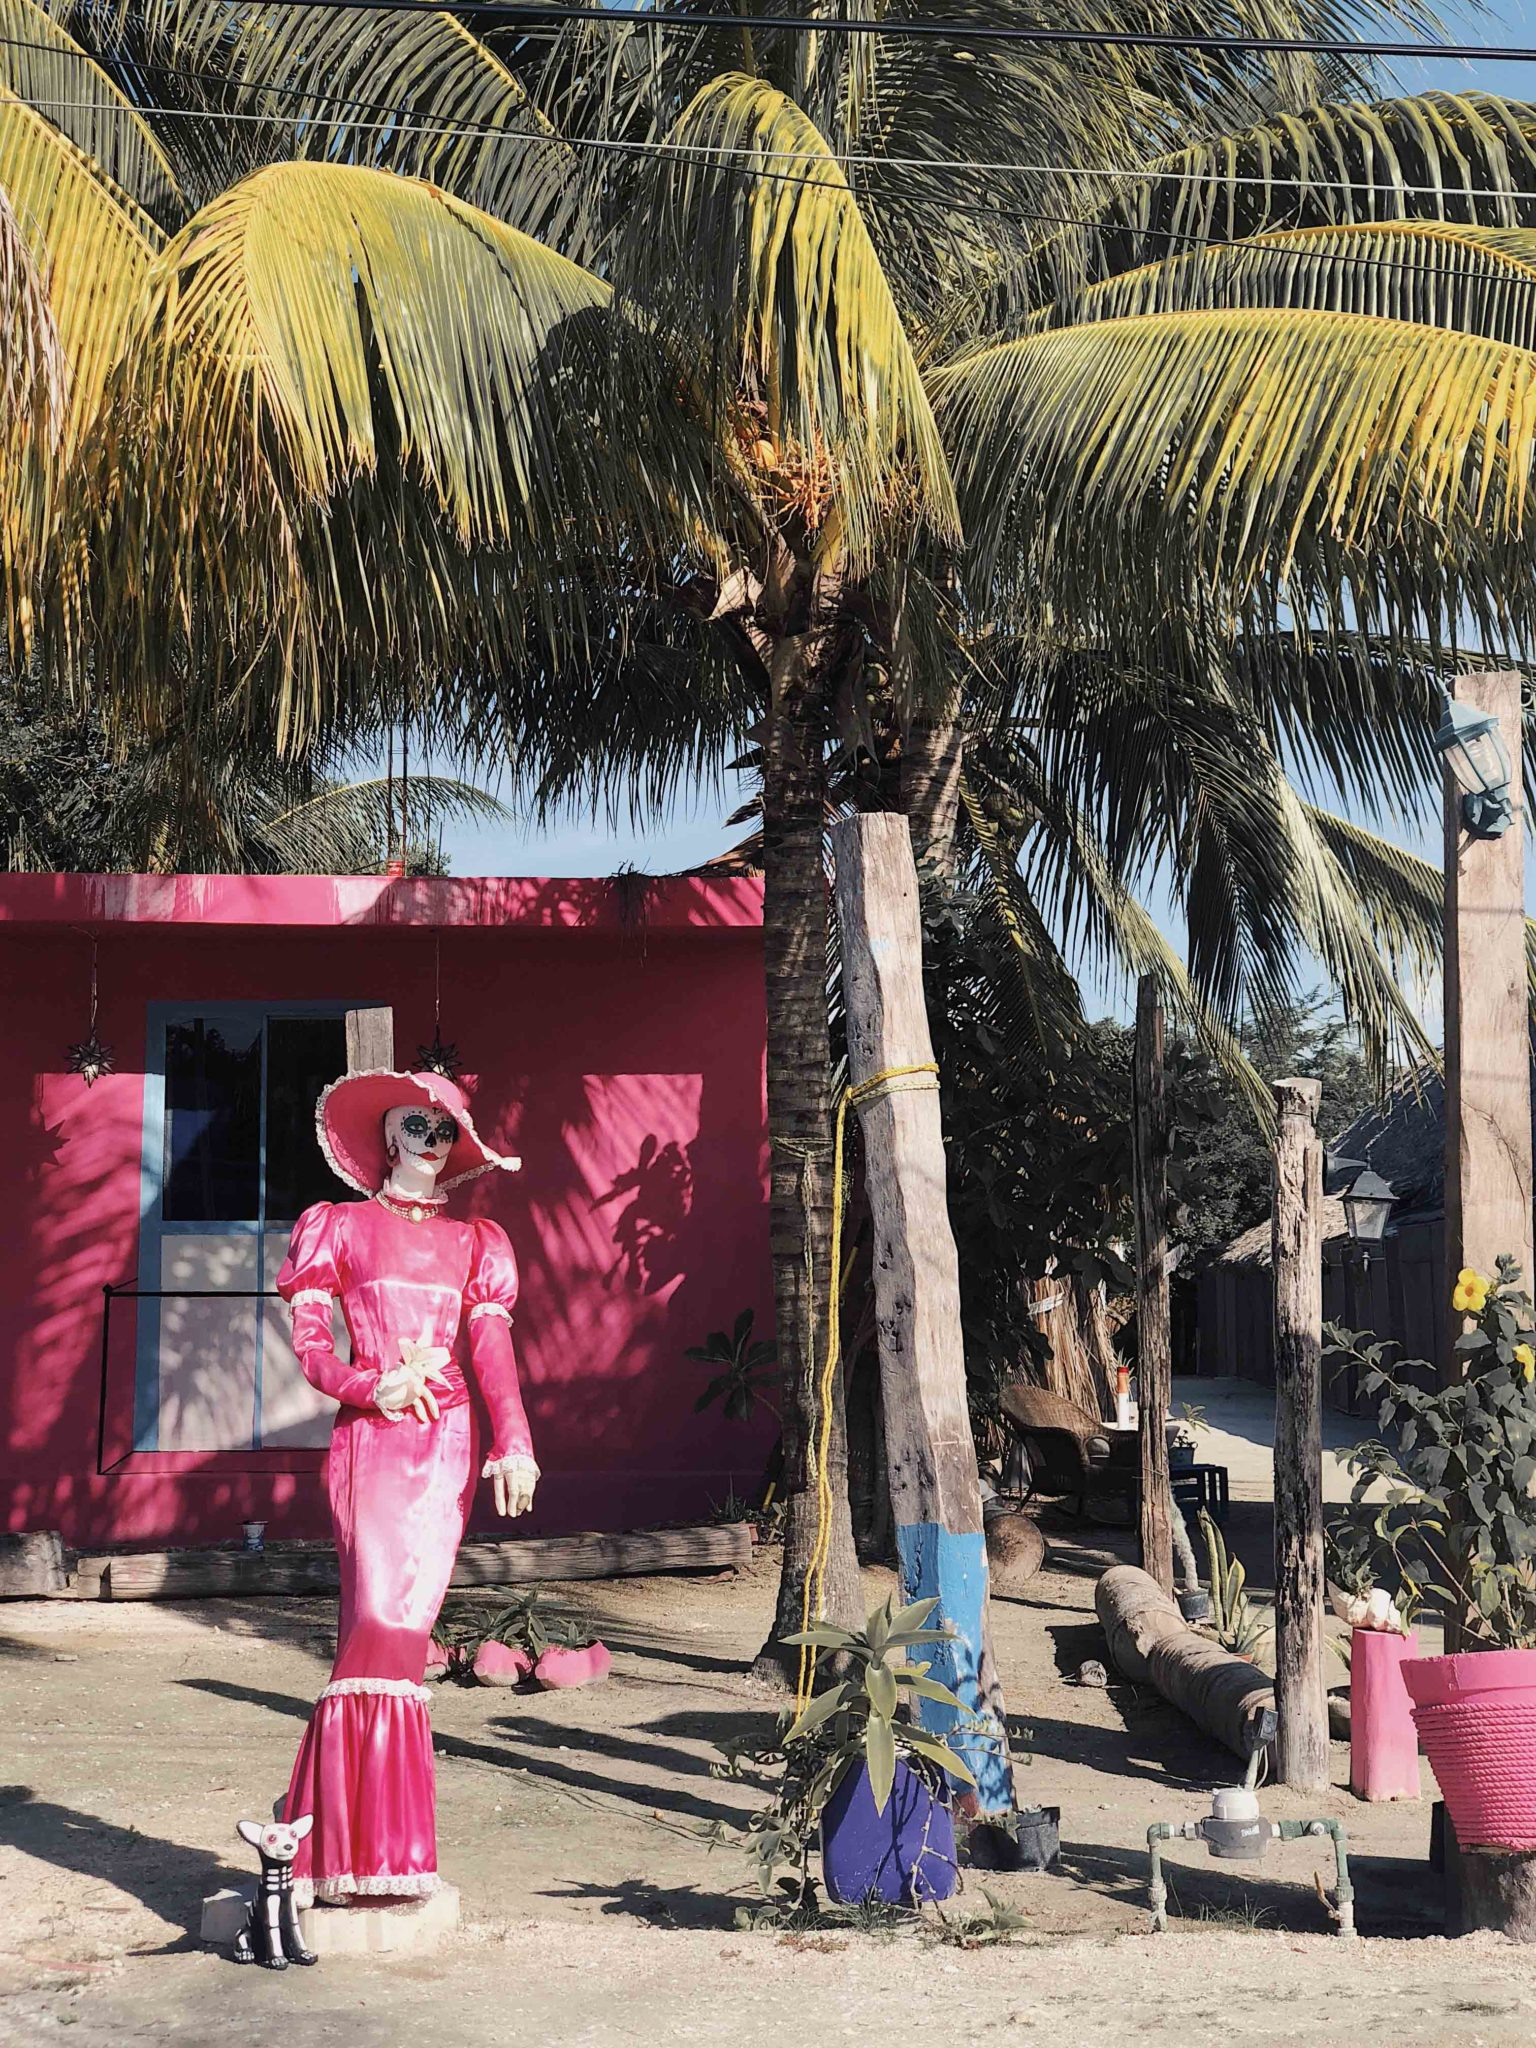 Travel ideas in Yucatan - Near Cancun discover the paradise of Holbox Island